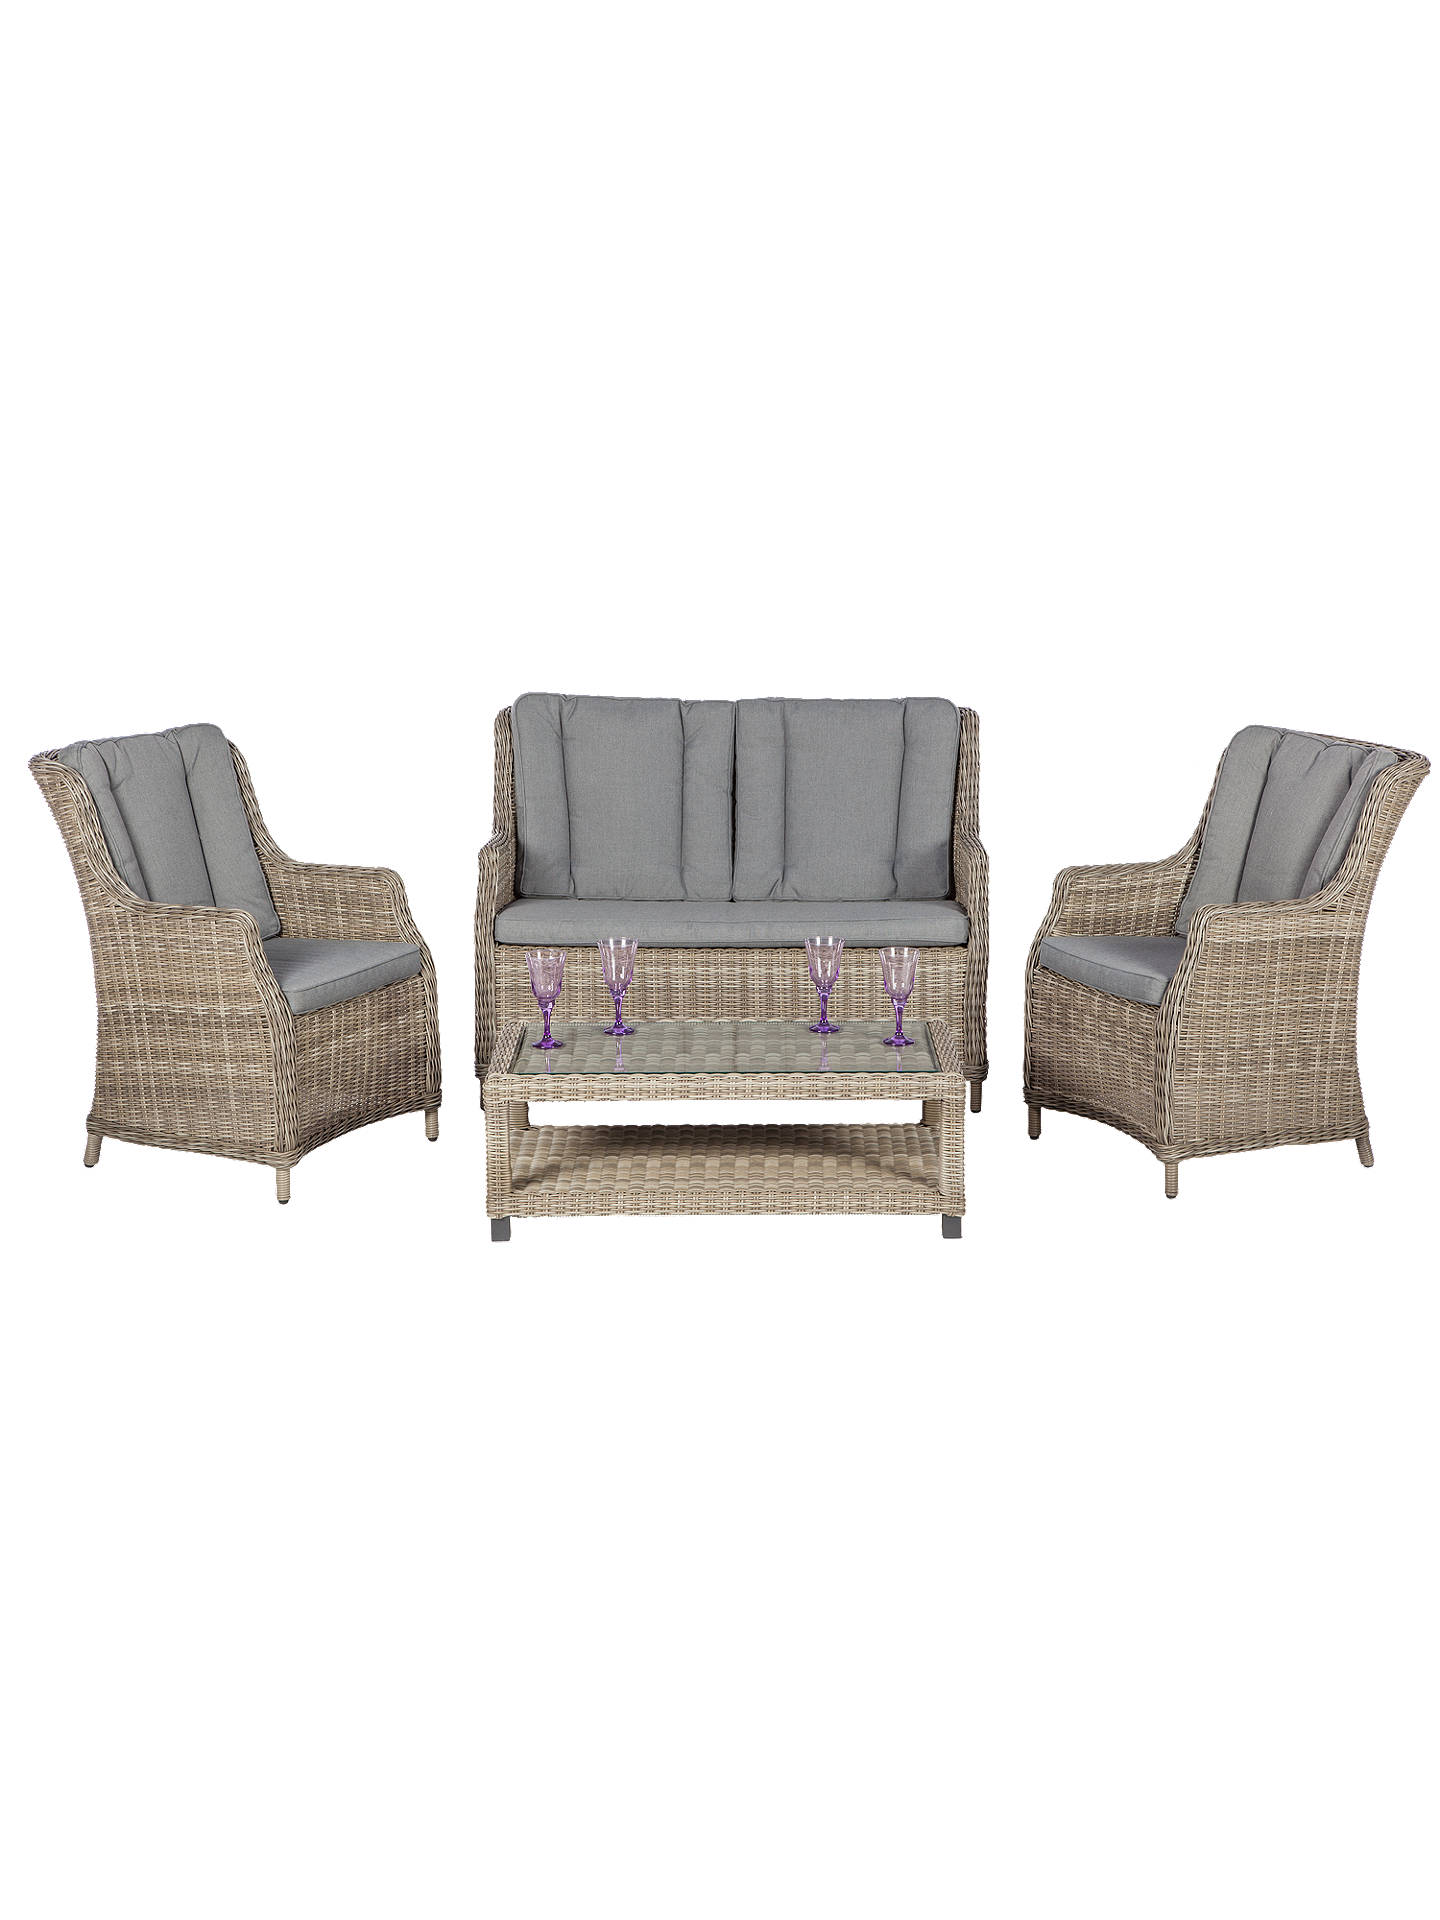 BuyRoyalcraft Wentworth 4-Seater Garden High Back Chairs and Table Lounge Suite Online at johnlewis.com